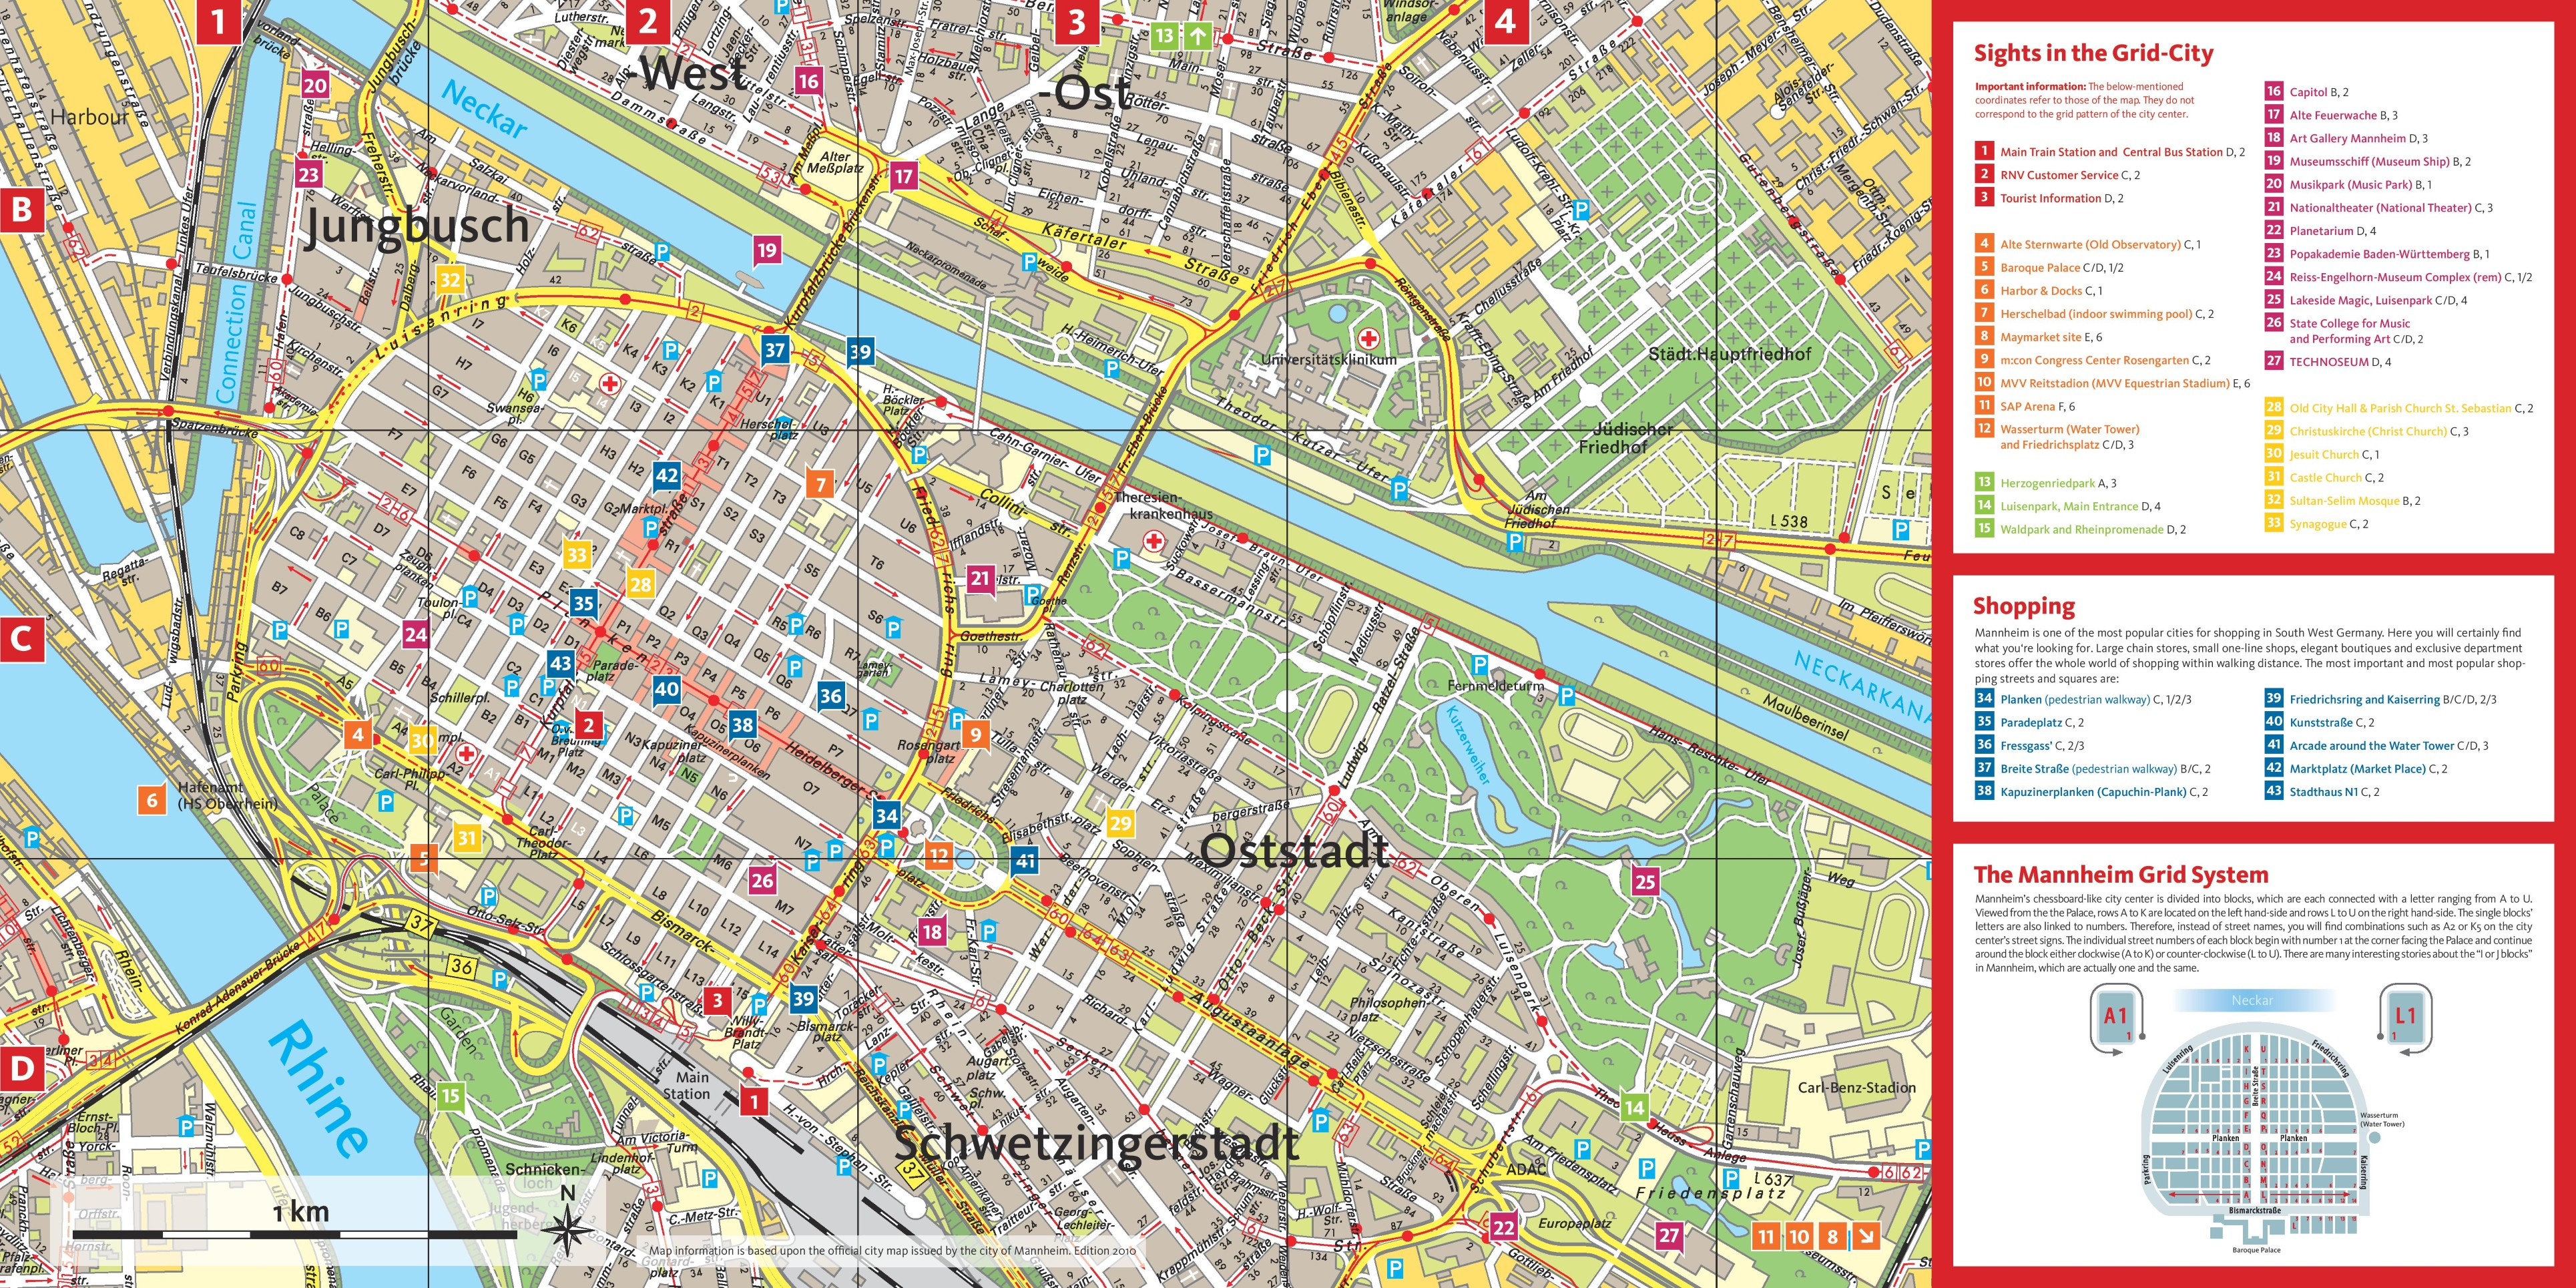 Mannheim tourist attractions map – Germany Tourist Attractions Map